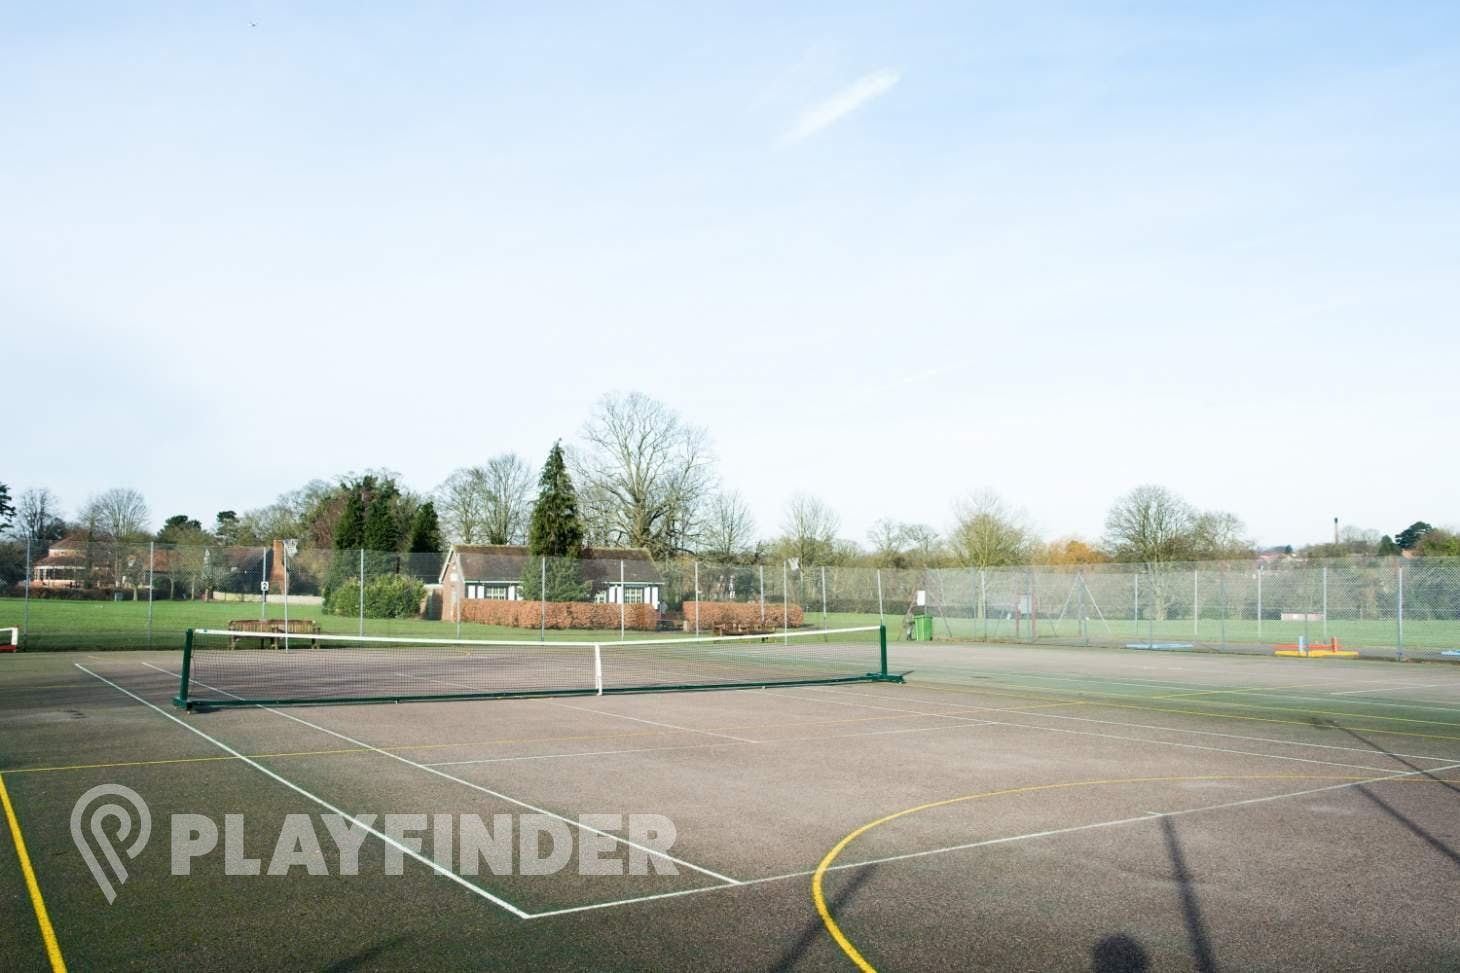 Abbey View Golf Course Outdoor | Hard (macadam) tennis court